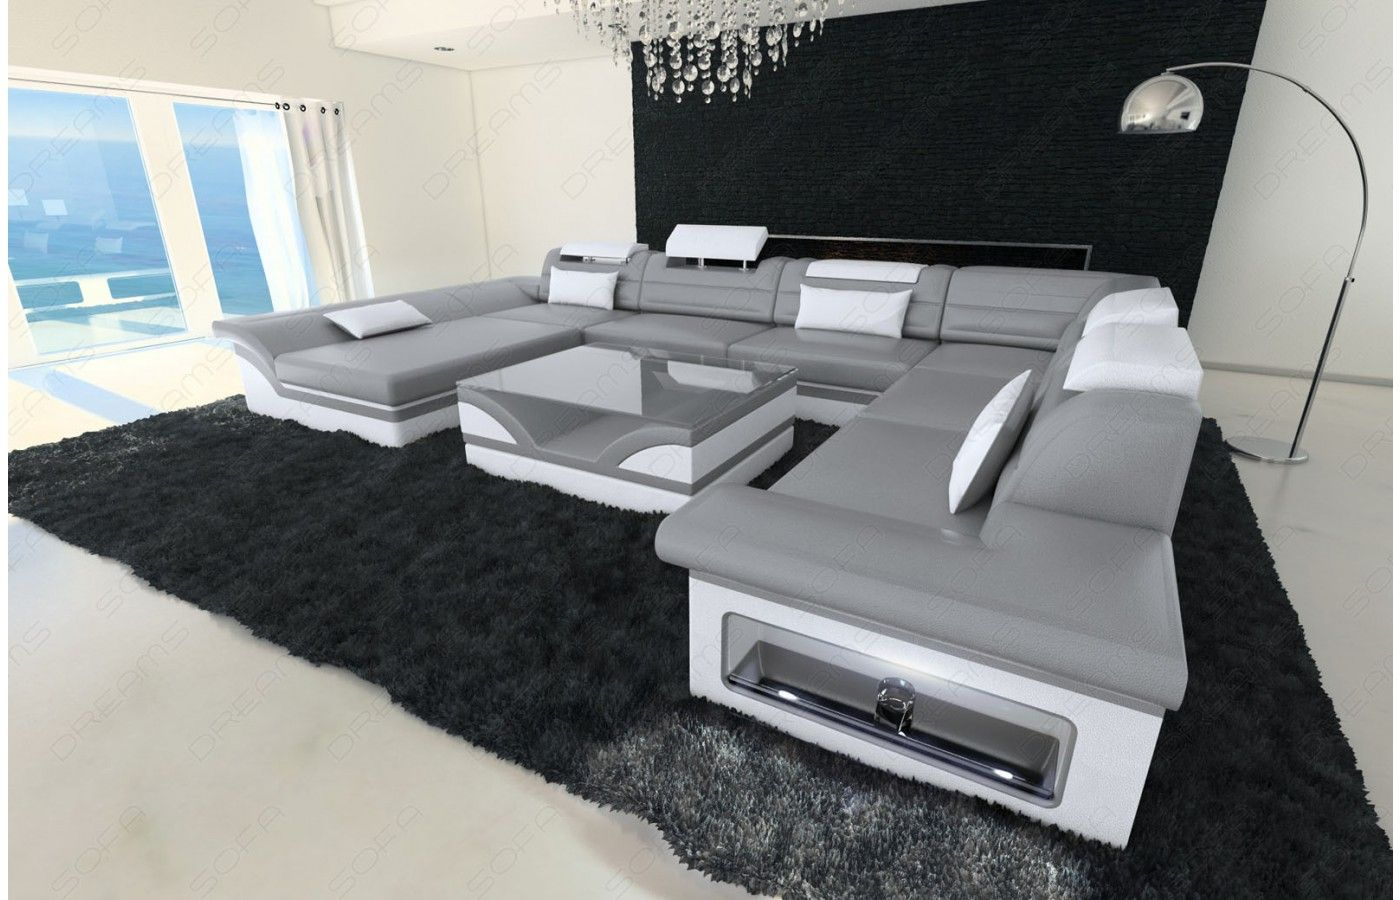 wohnlandschaft enzo xxl in grau wei exklusive designer m bel von sofa dreams wohnlandschaft. Black Bedroom Furniture Sets. Home Design Ideas